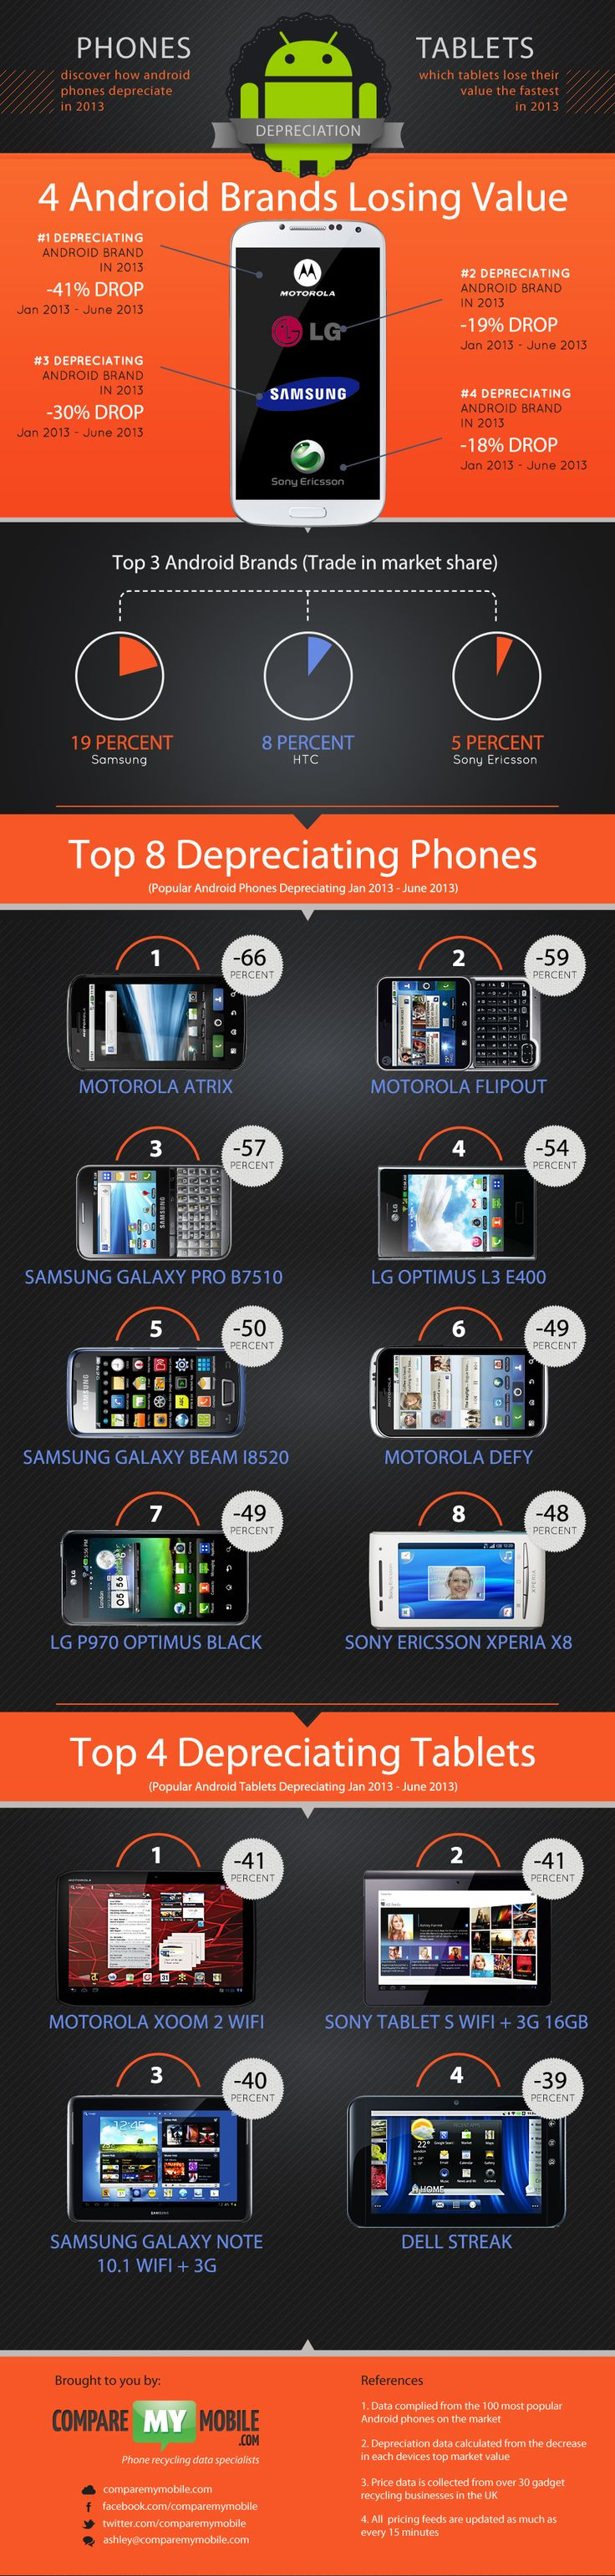 Android phone depreciation recycling stats #android /infographic